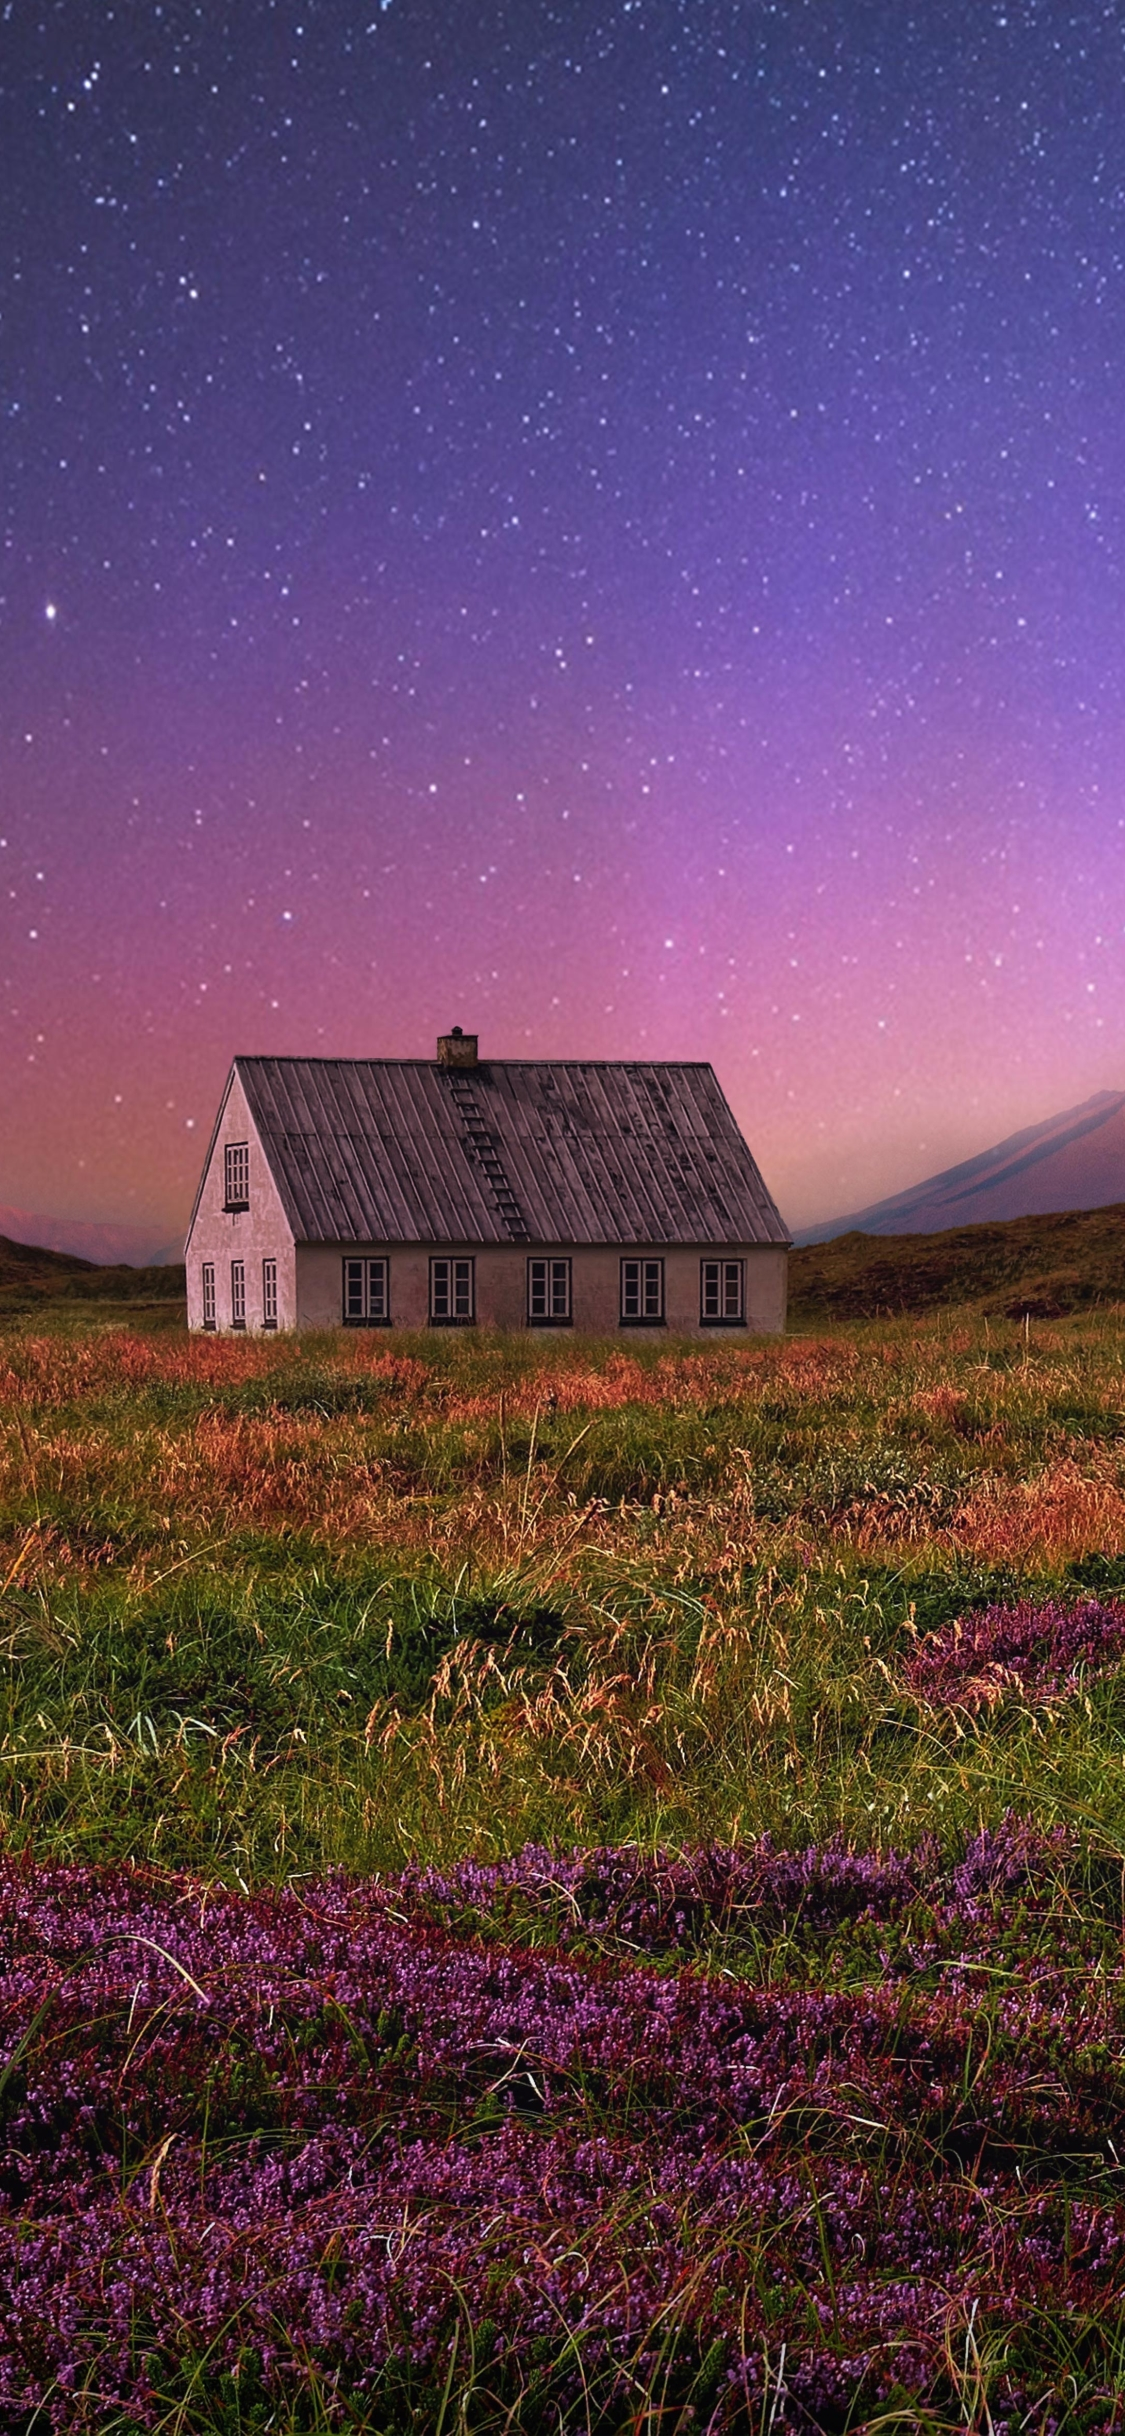 1125x2436 Fantasy House in Field 4K Iphone XS,Iphone 10 ...